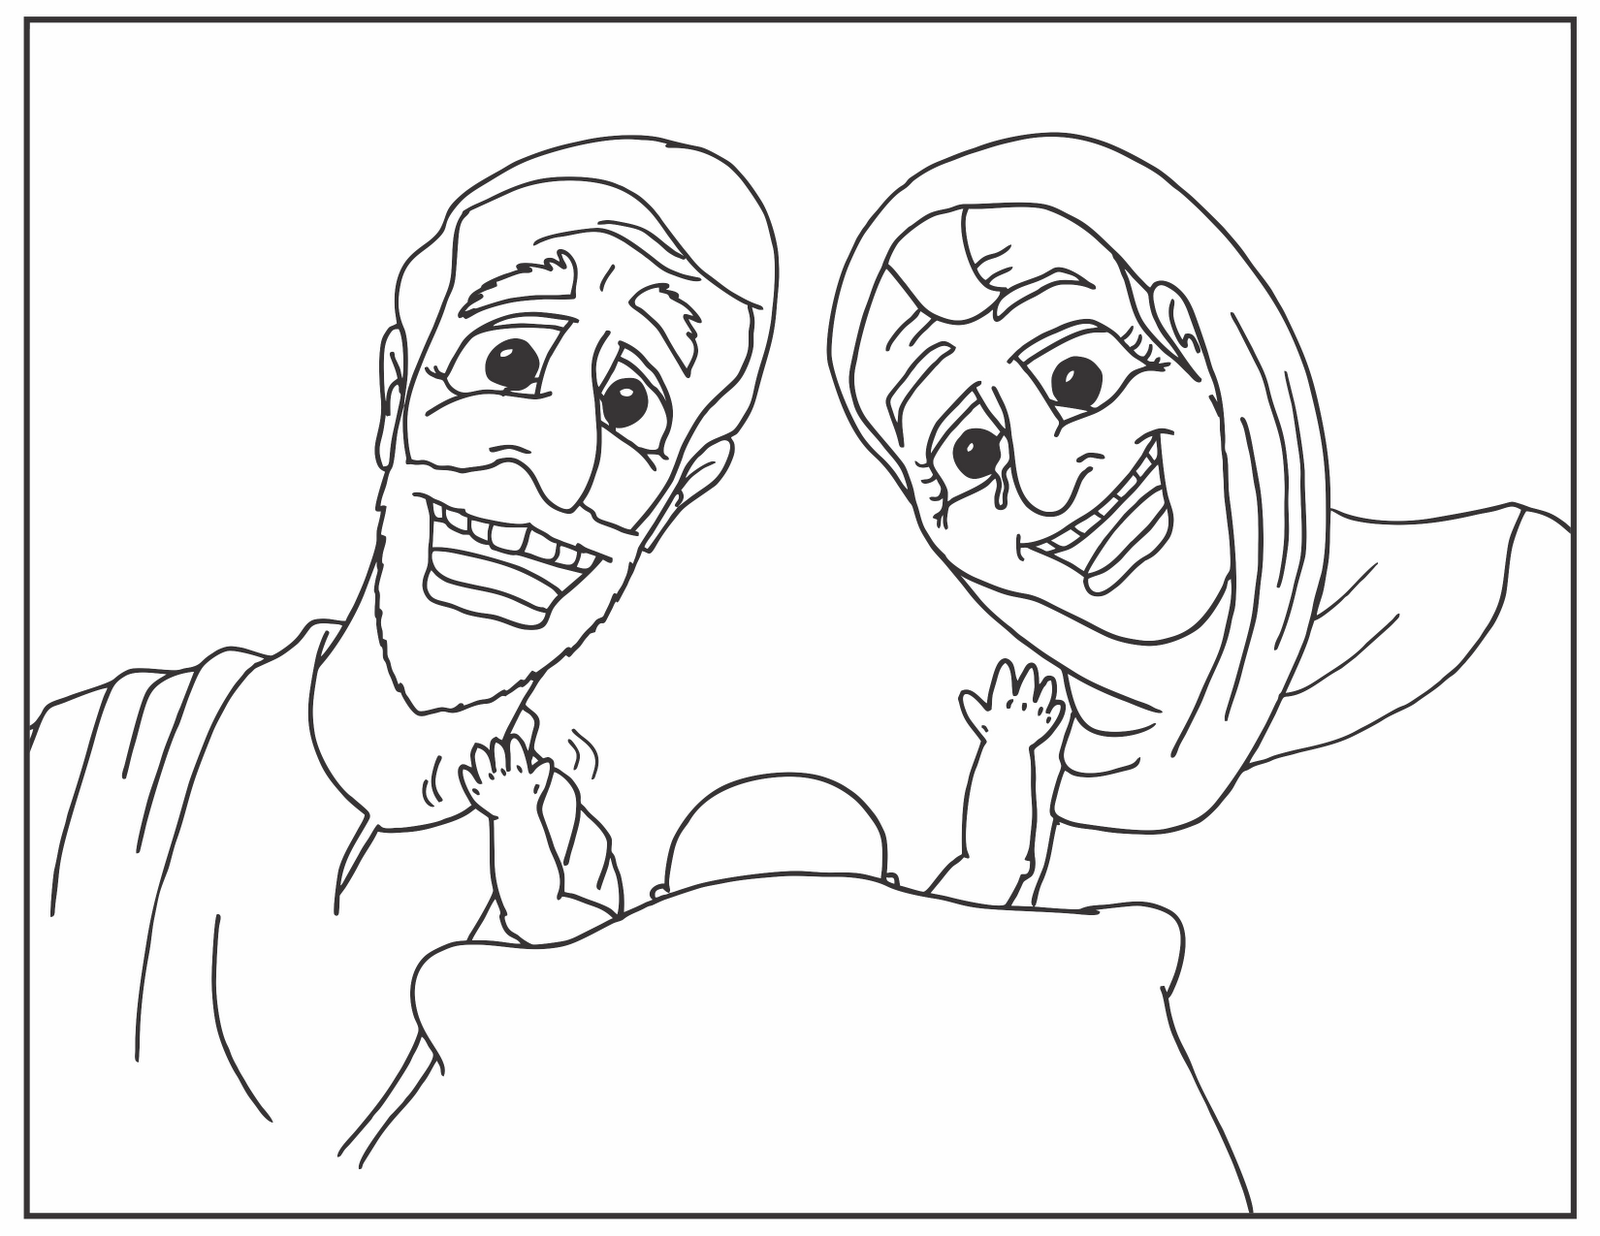 Pin By Kathryn Ottaway On Creepiest Christian Colouring